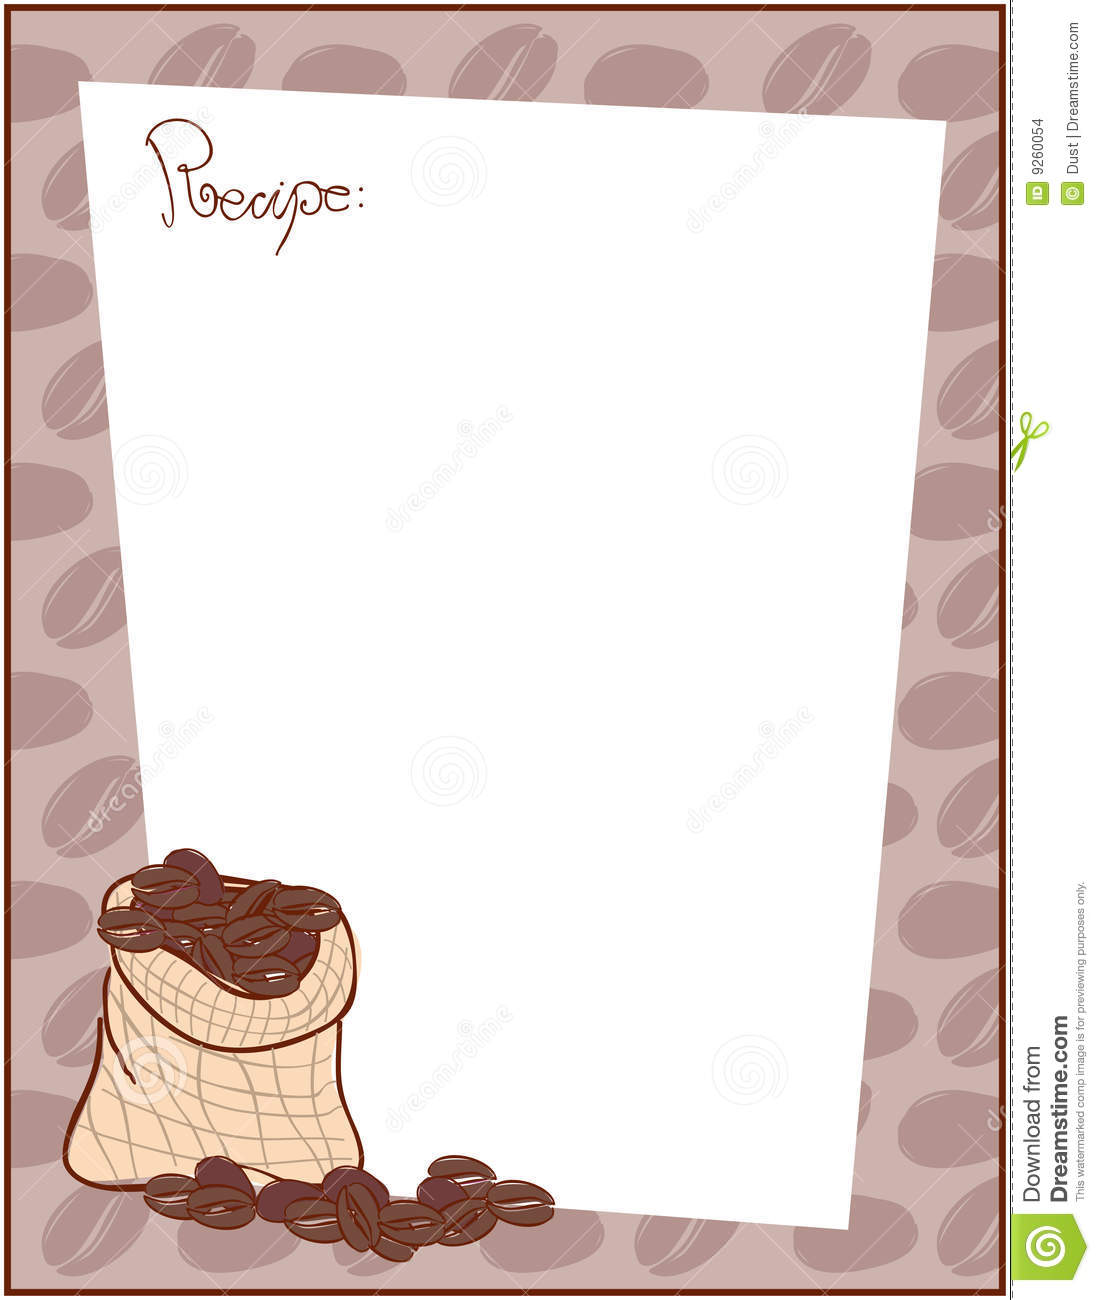 Vector illustration of recipe template with coffee sack and beans.